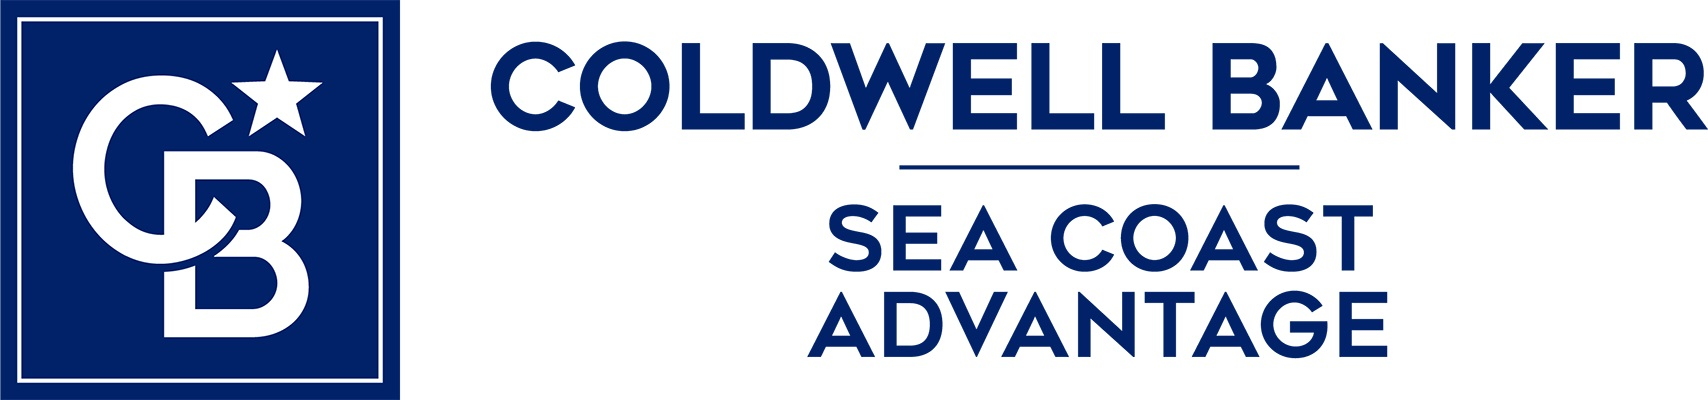 Jeanne Gordon - Coldwell Banker Sea Coast Advantage Realty